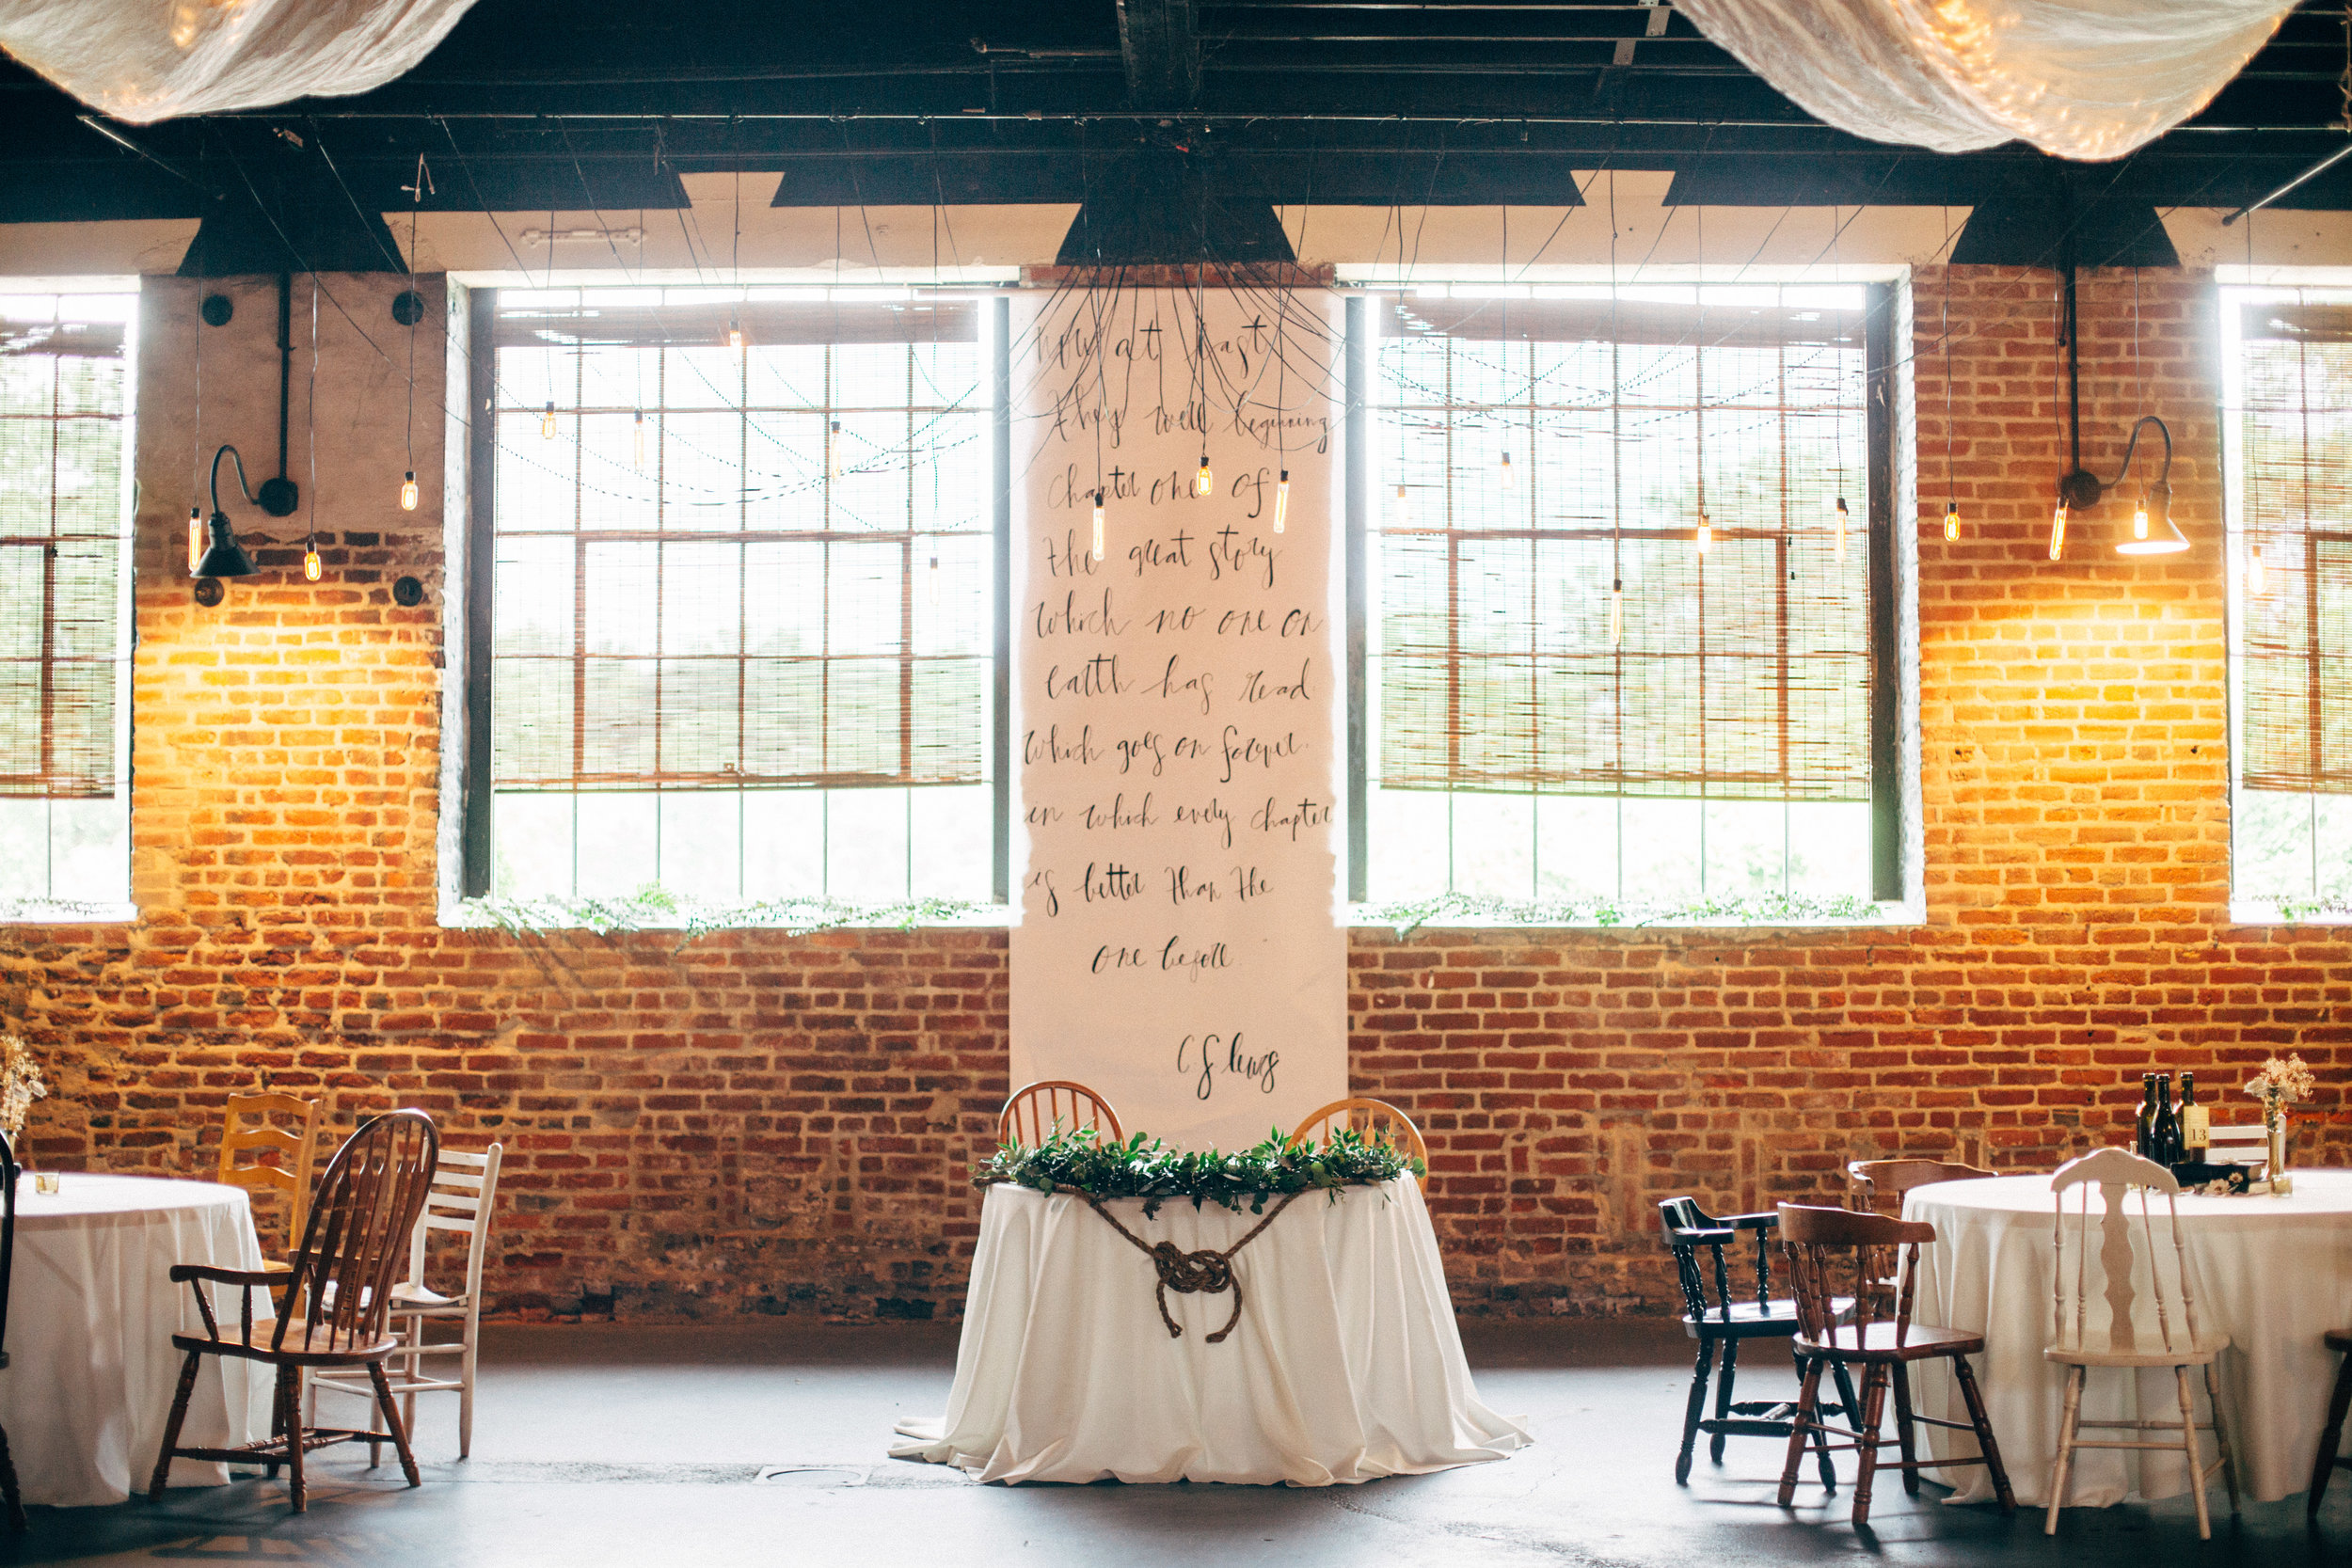 bride and groom's table at their wedding reception at the Inn at the Old Silk Mill